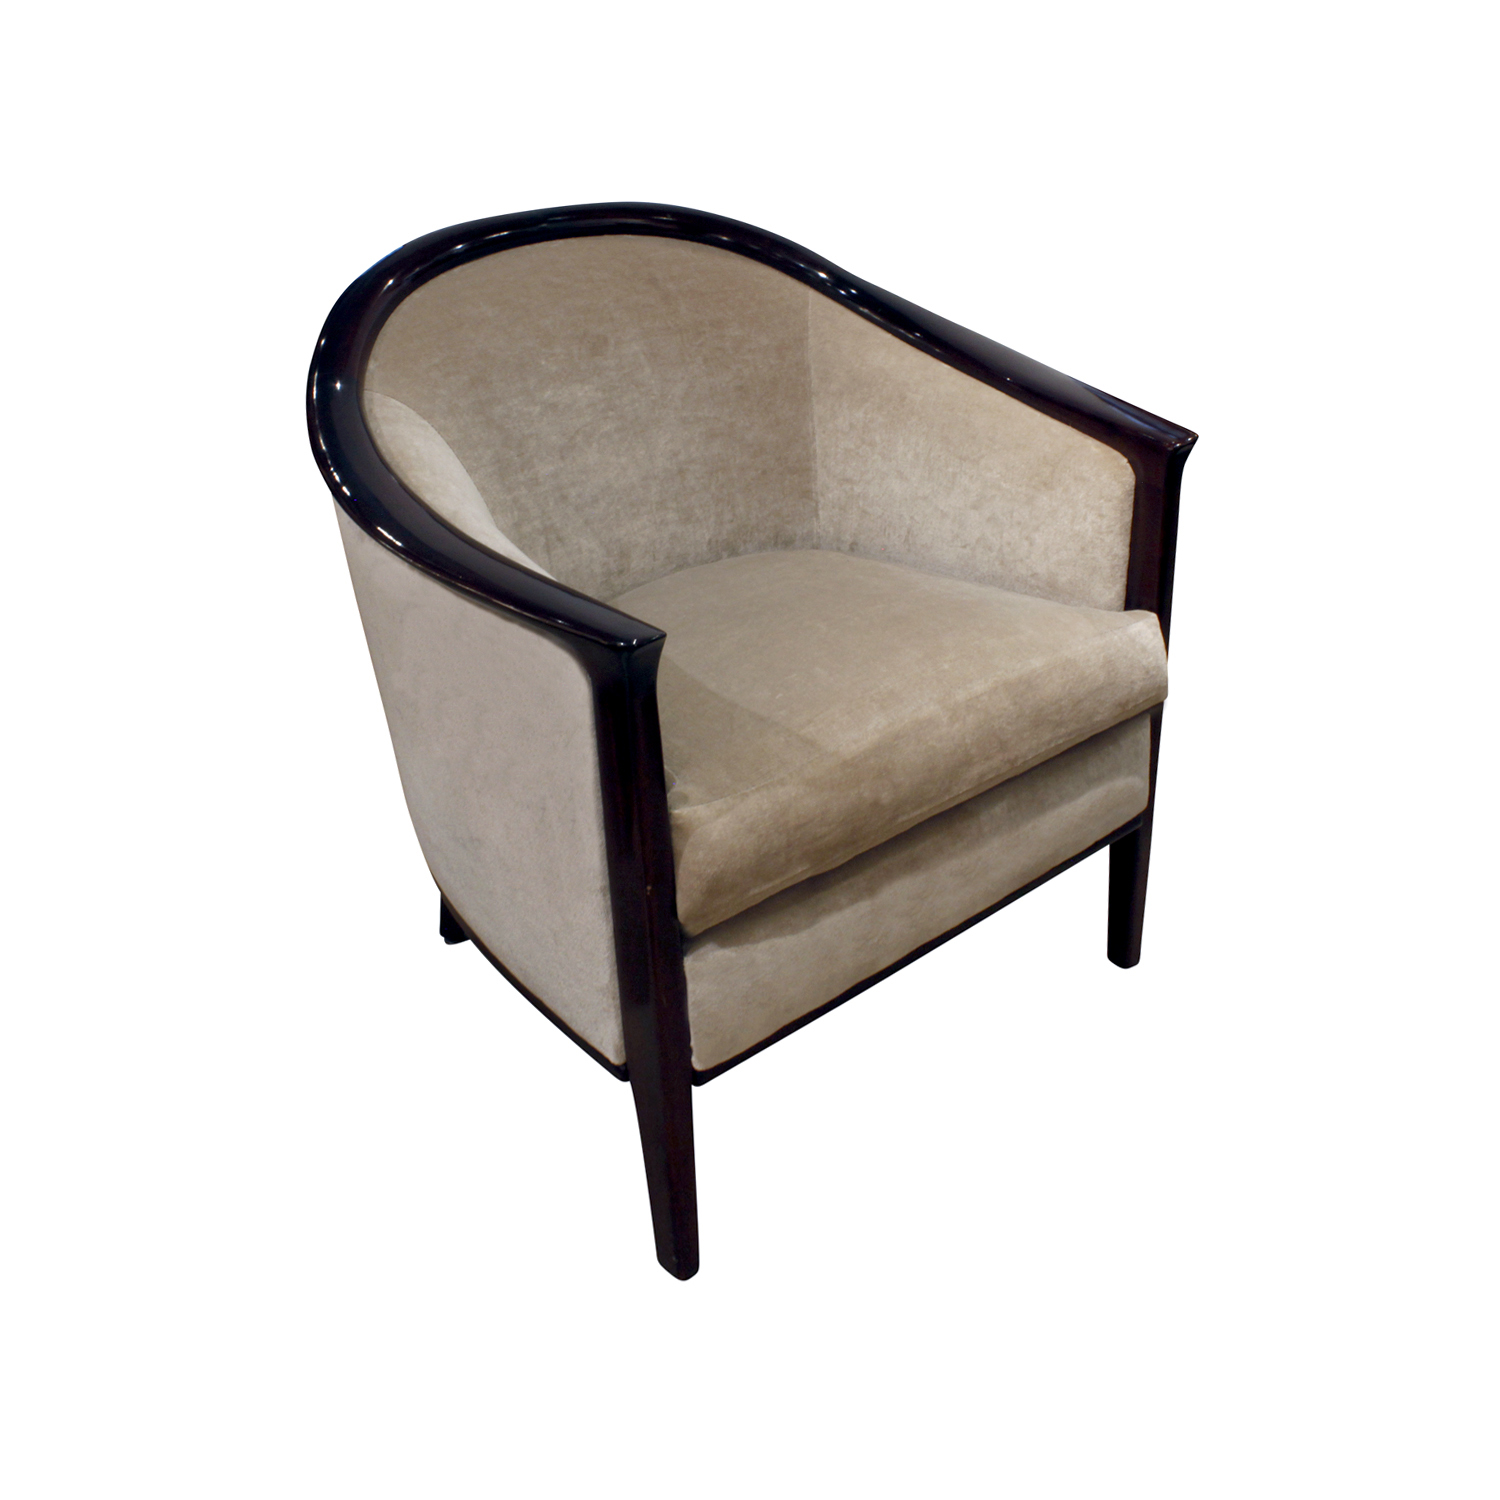 French 150 30s chairs mahg trim loungechairs188 angl.jpg